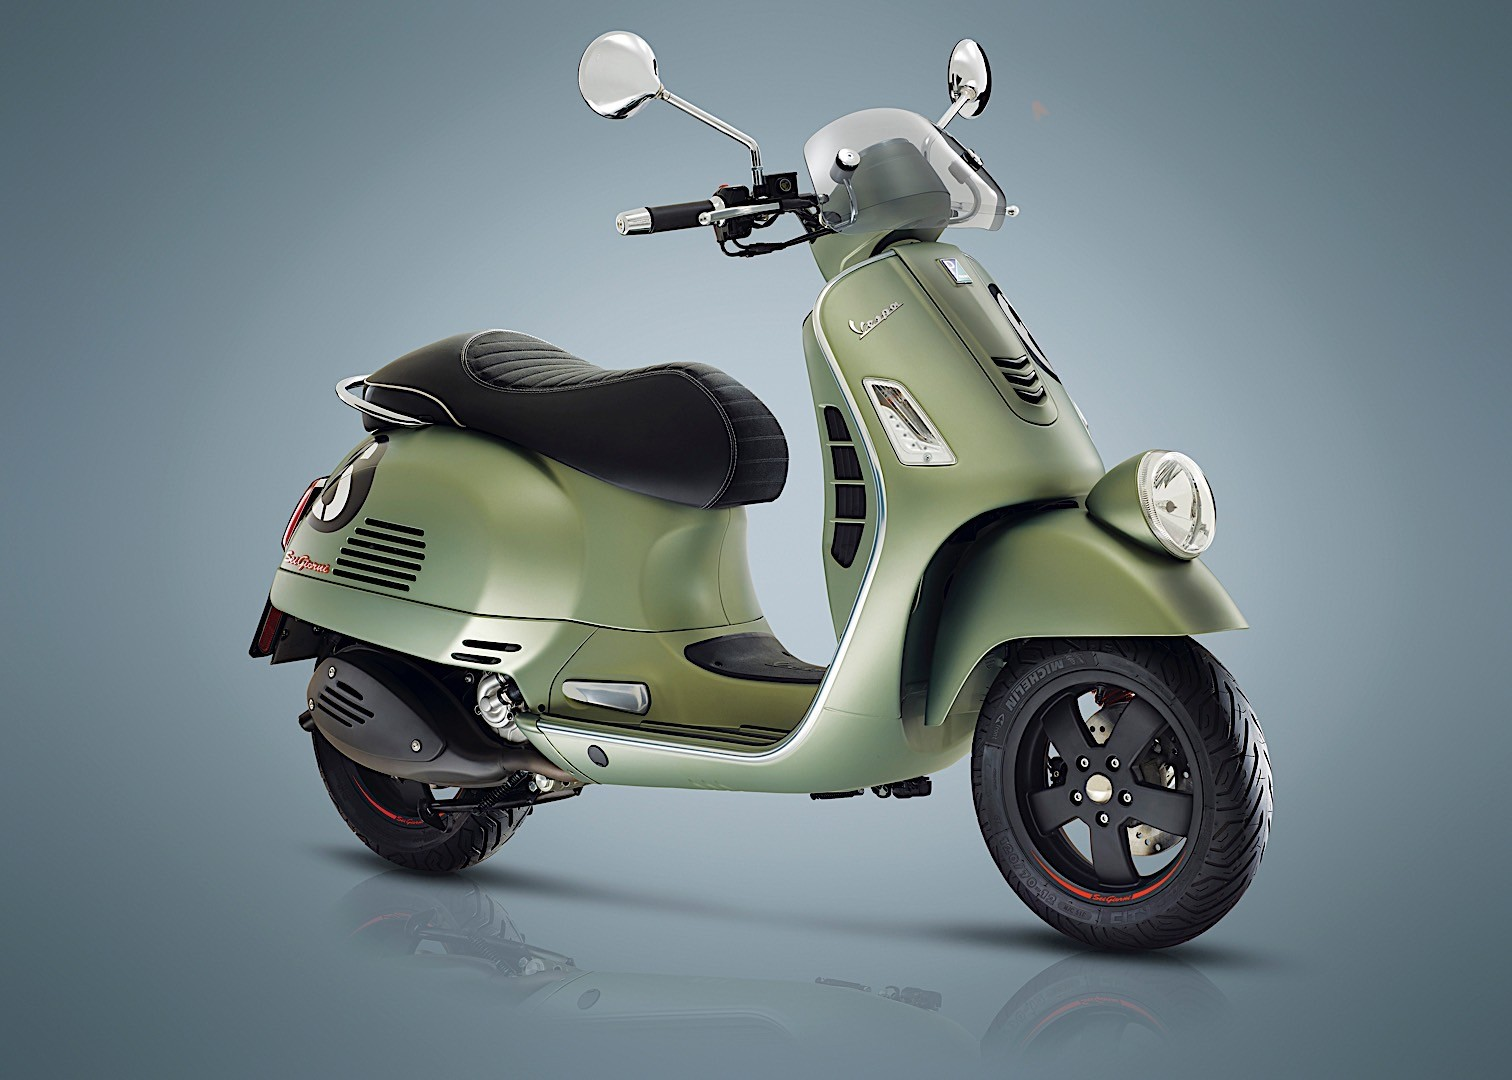 Piaggio Vespa Notte 125 Price Revealed; Official Launch In August